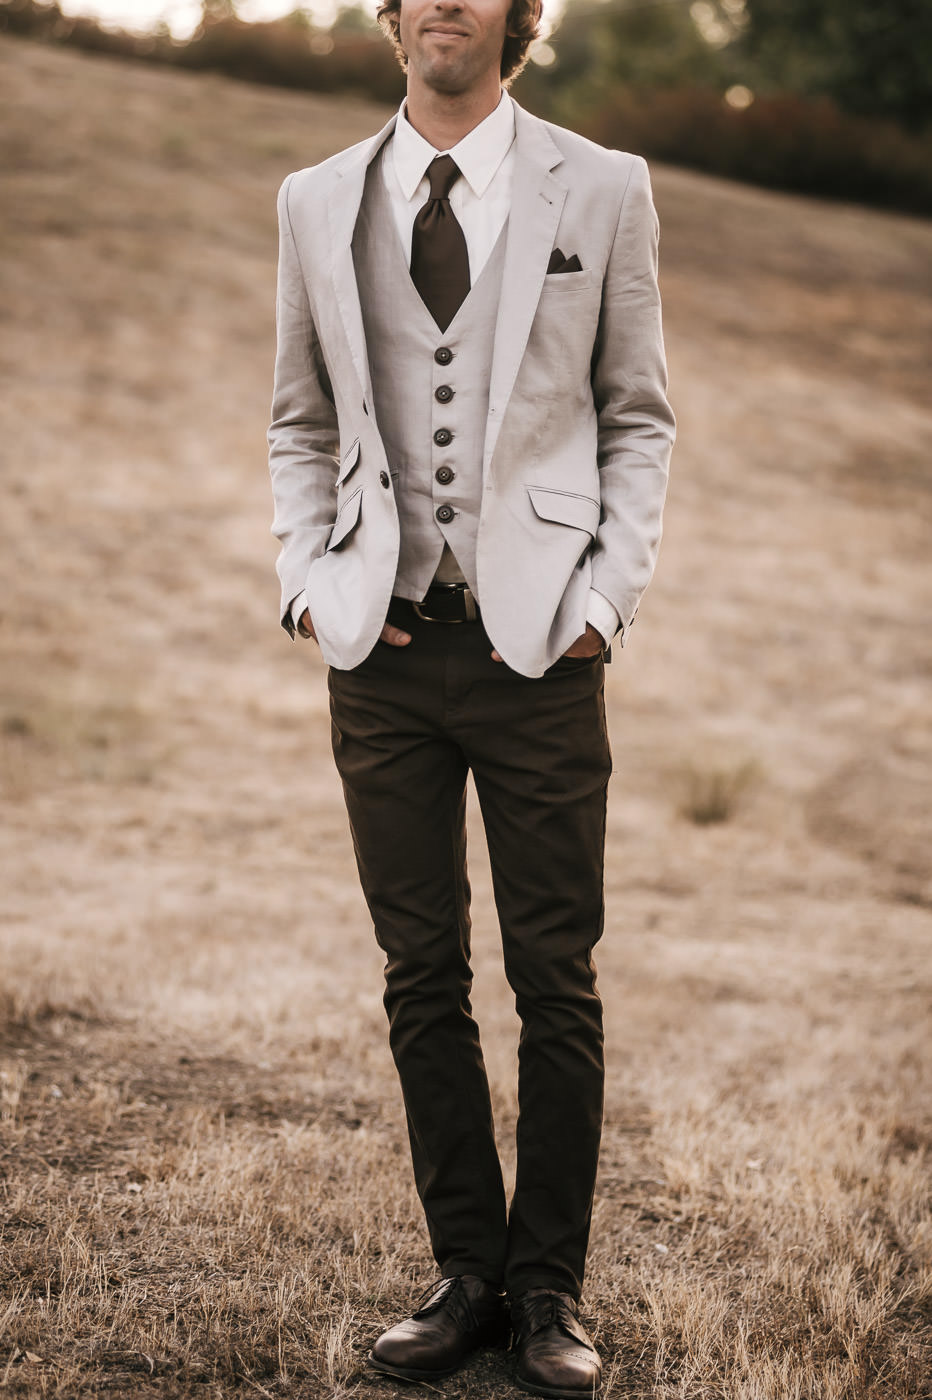 Grey coat and vest with brown slacks and details makes for fantastic vintage wedding style